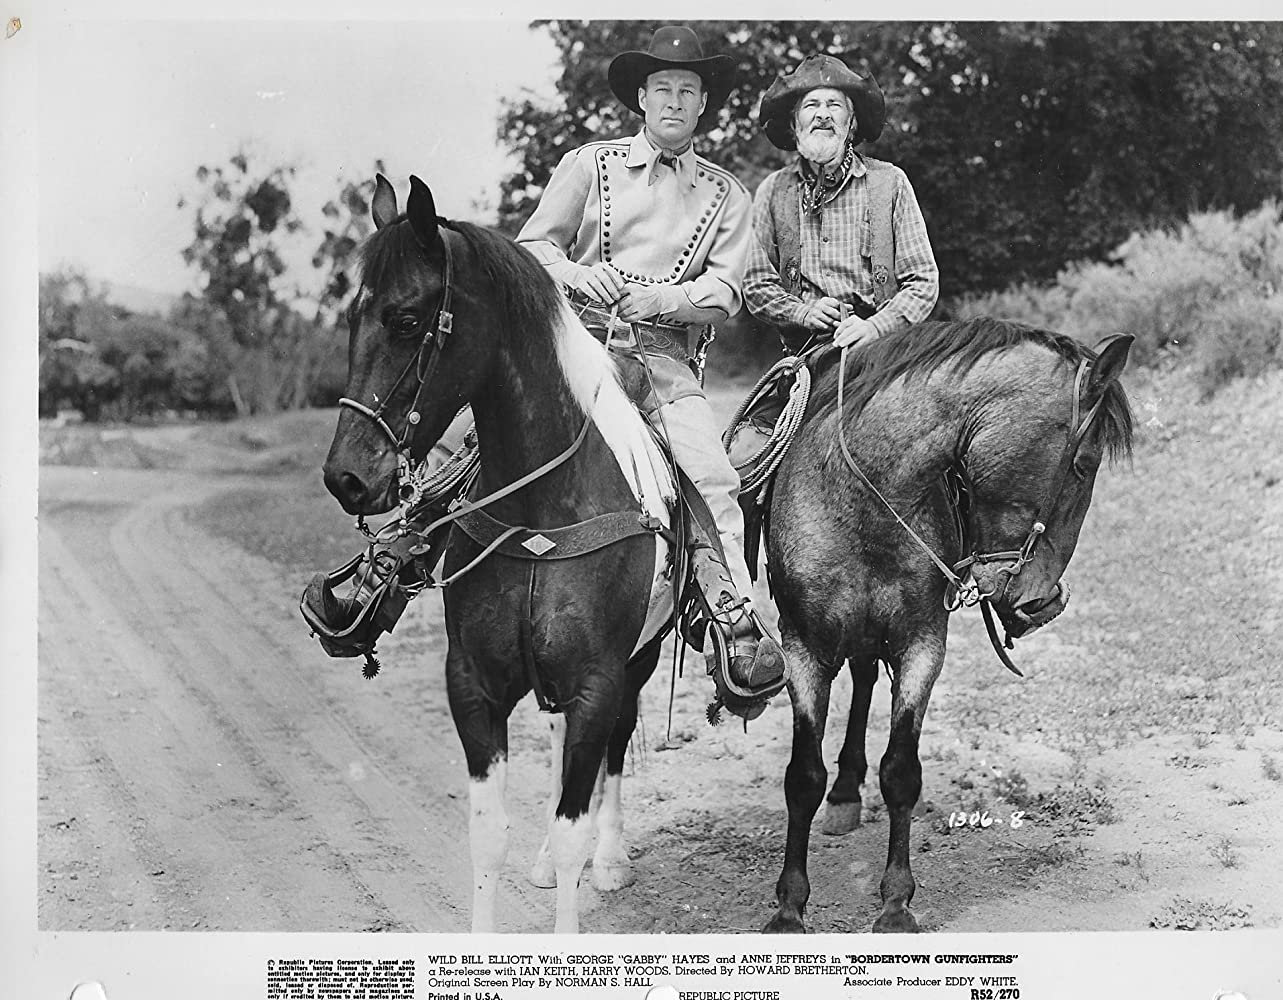 Bill Elliott and George 'Gabby' Hayes in Bordertown Gun Fighters (1943)